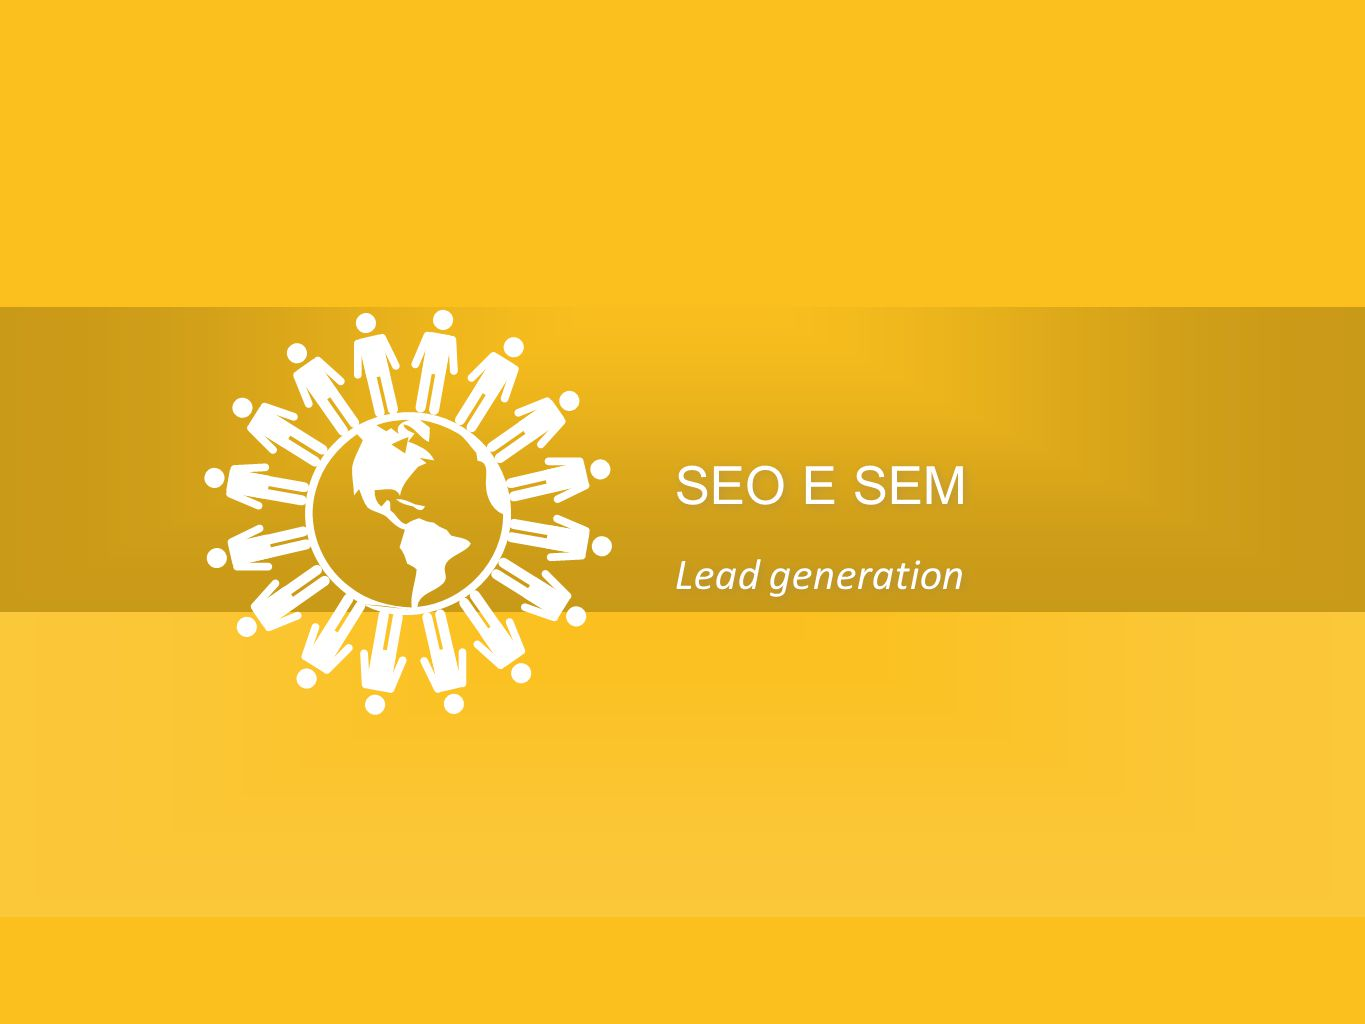 Estated www.gsite.ch SEO SEM Marketing online 6 6 36 % sem 64 % seo